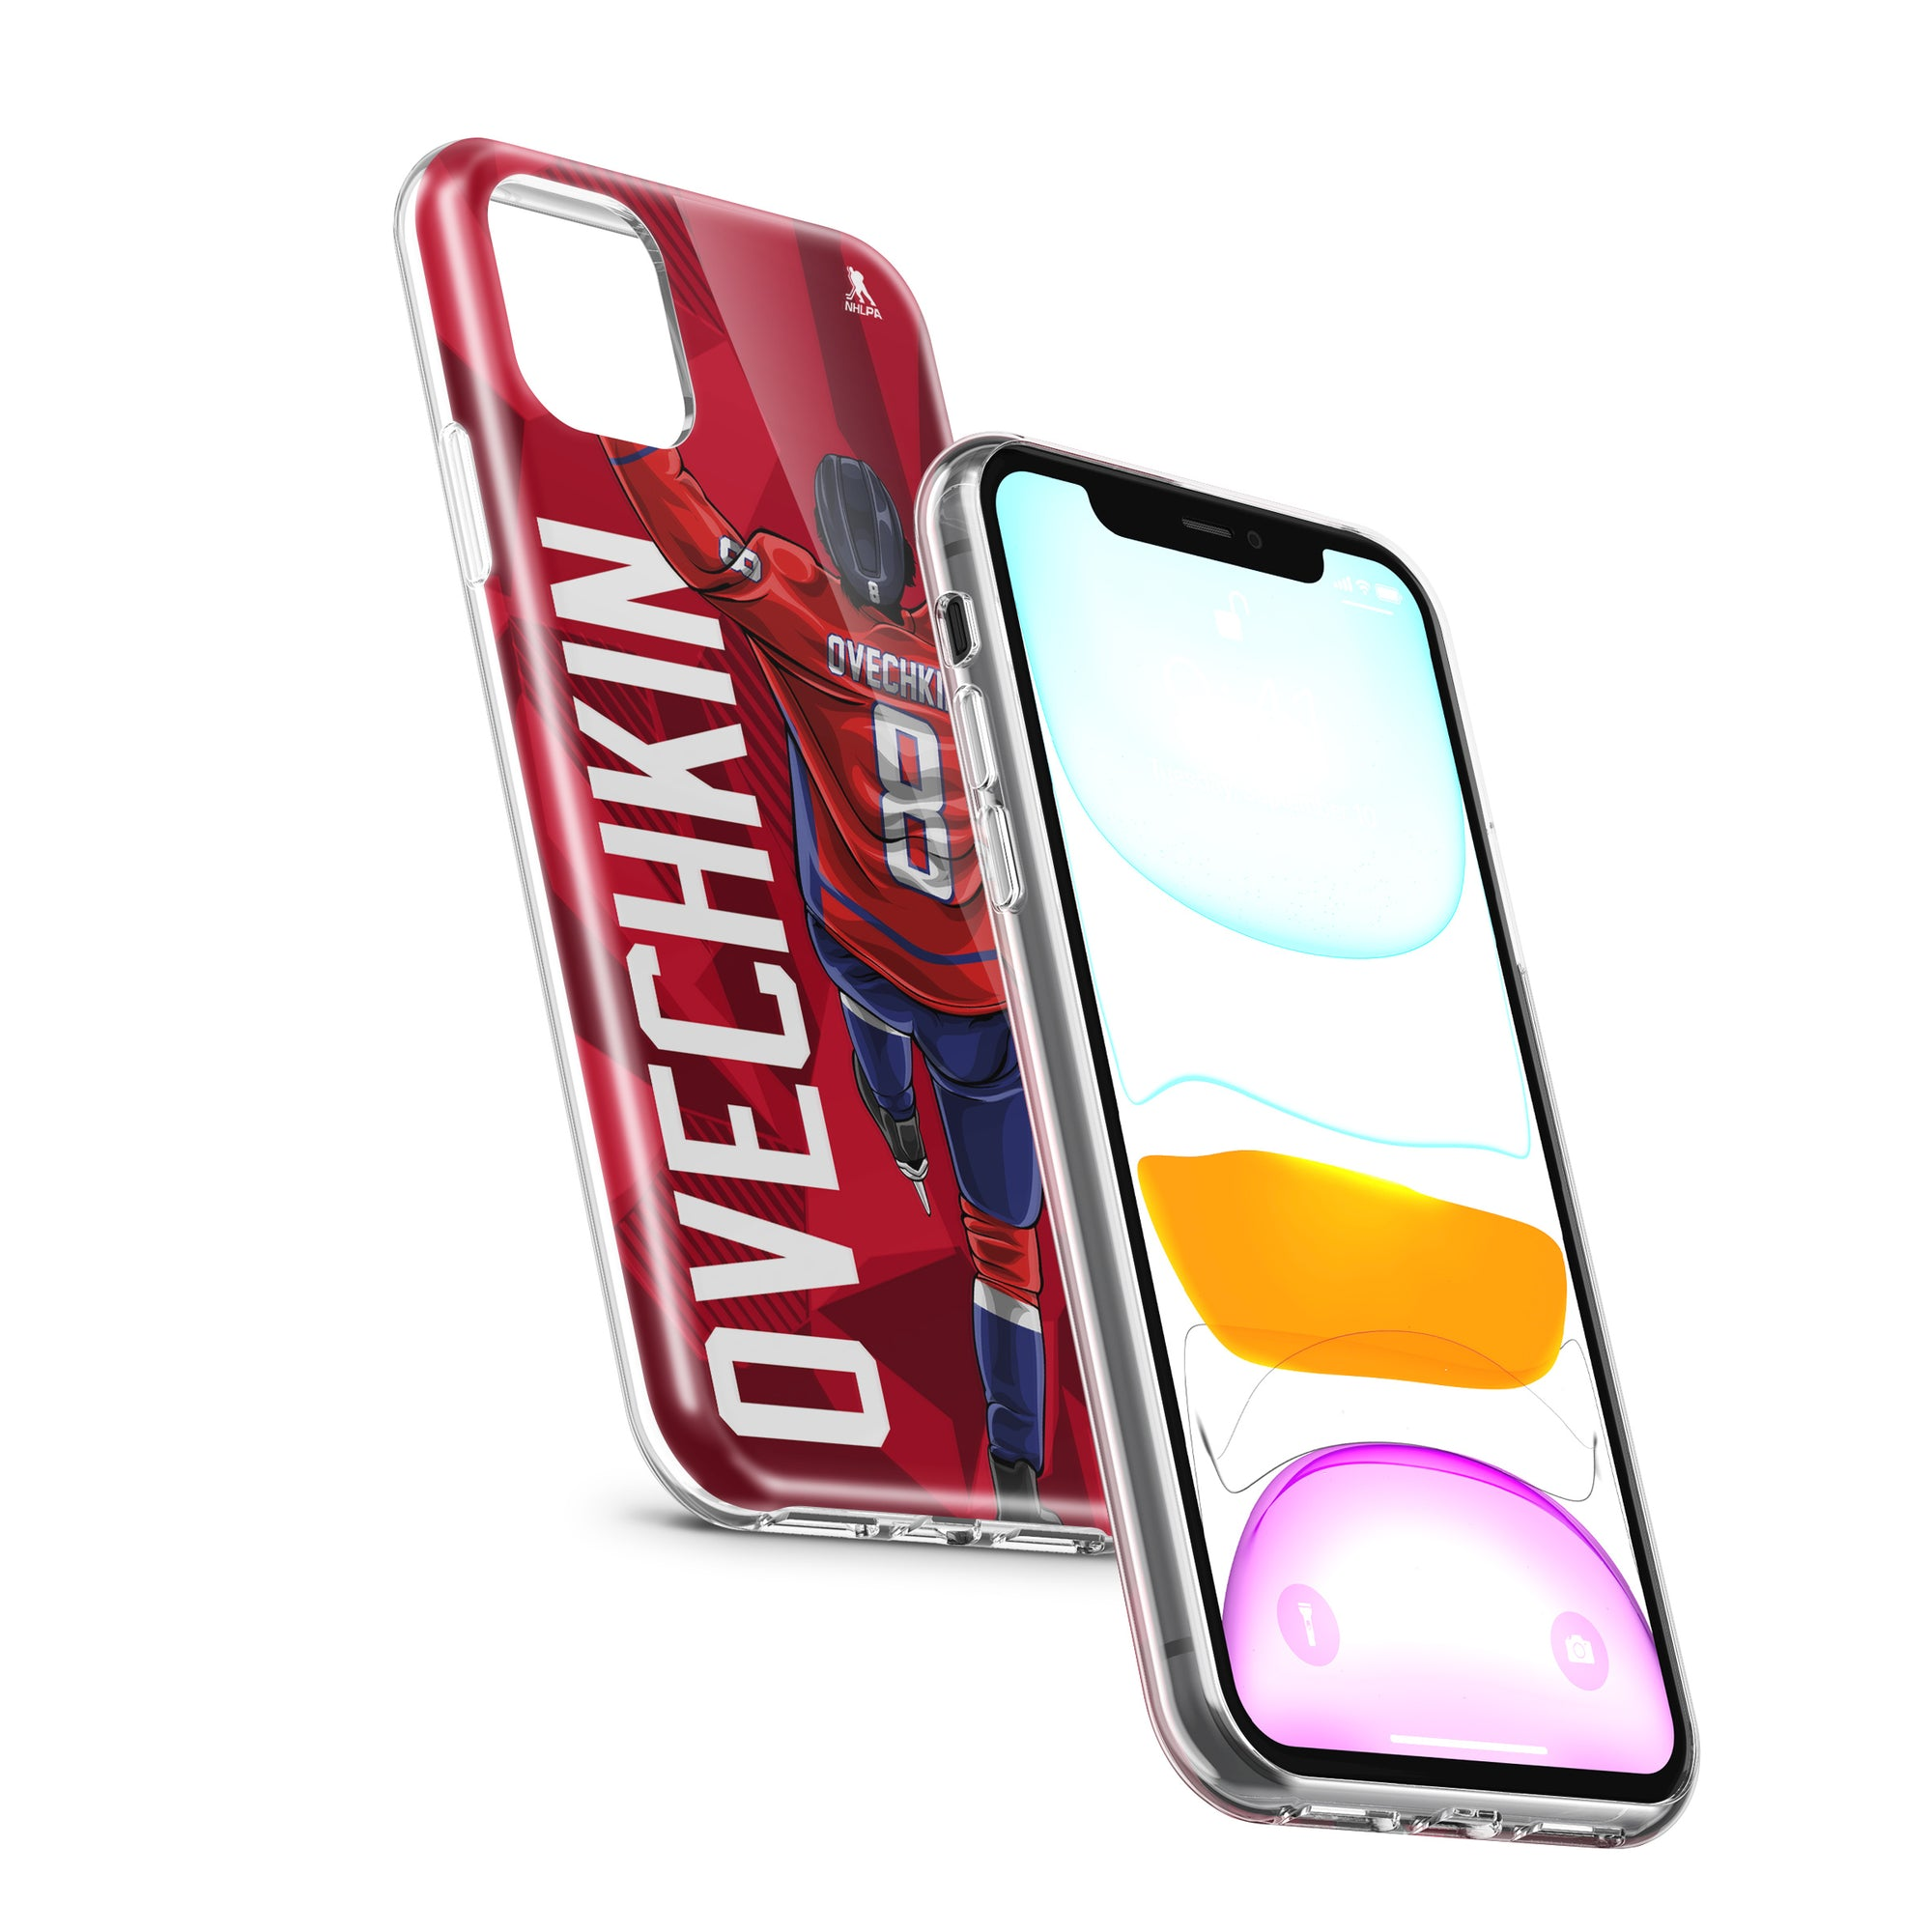 Ovechkin Star Series 2.0 Case